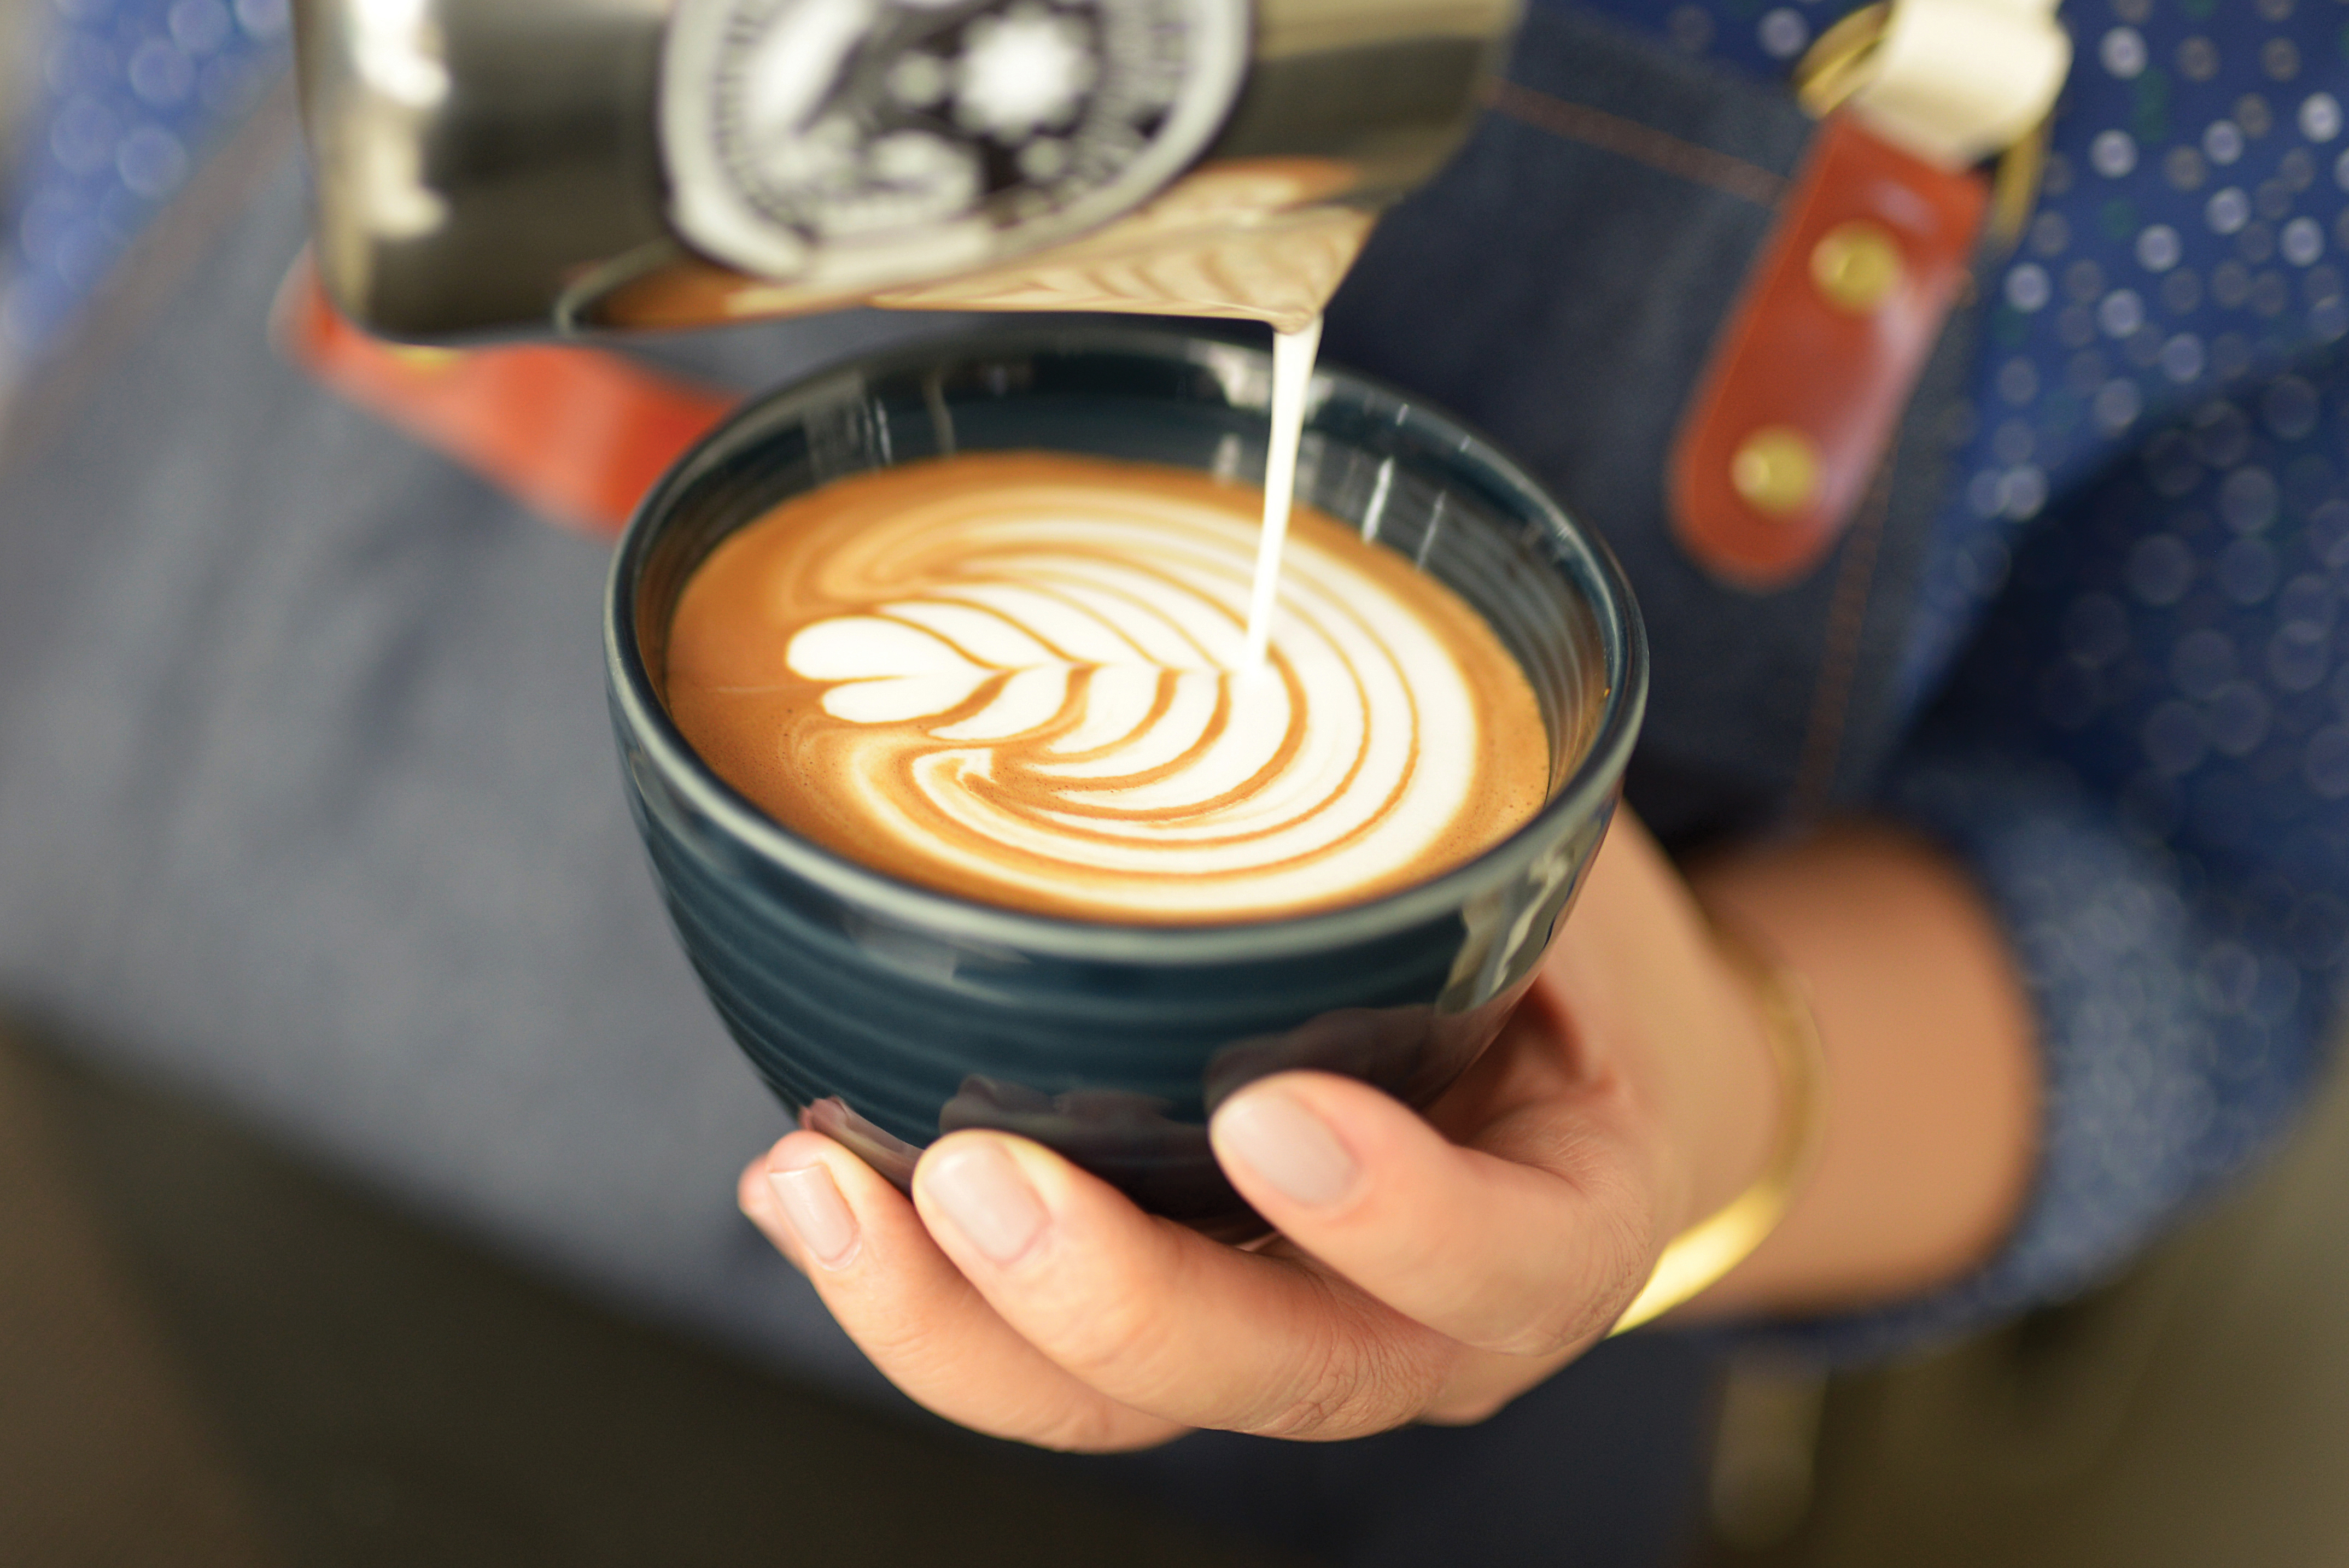 art-on-the-cup-heart-fp